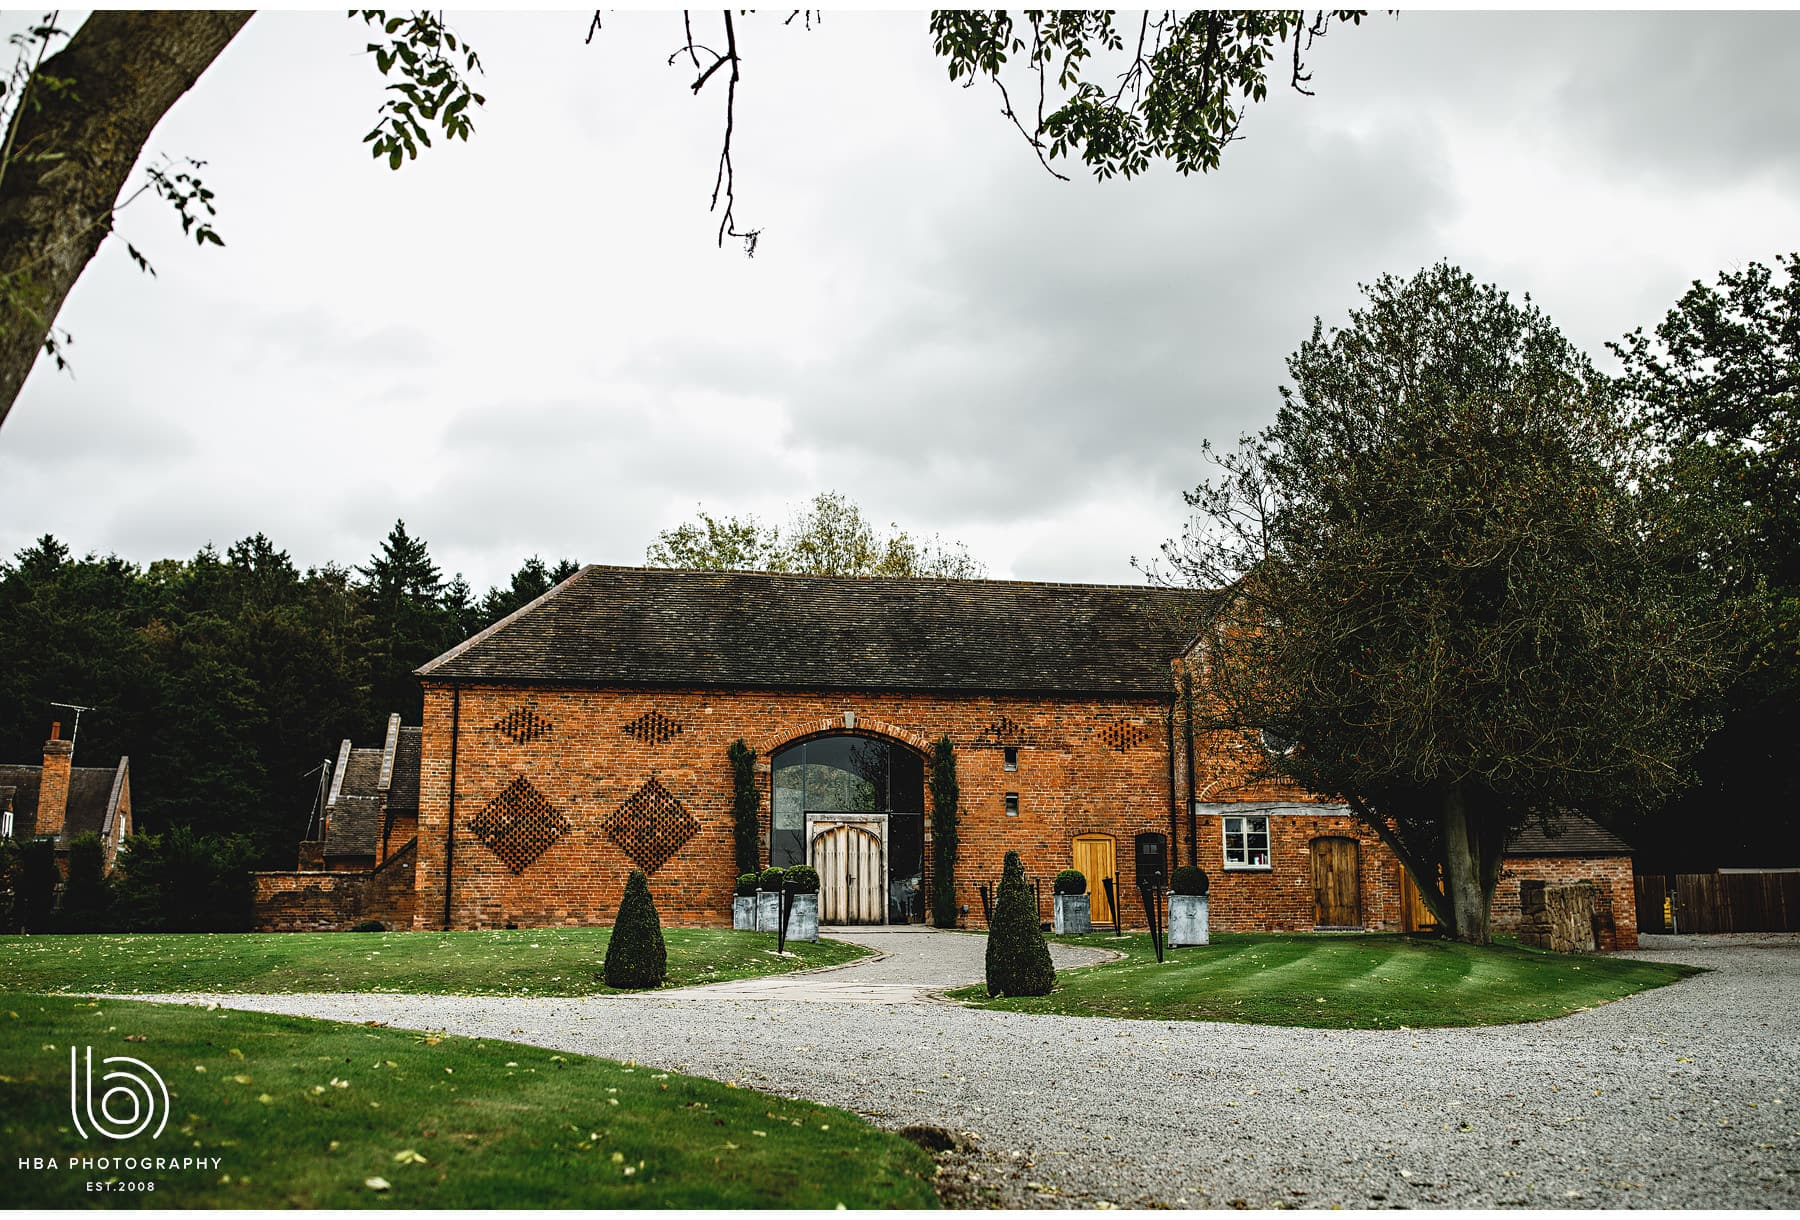 Andrea & Mark married at Shustoke Farm Barn